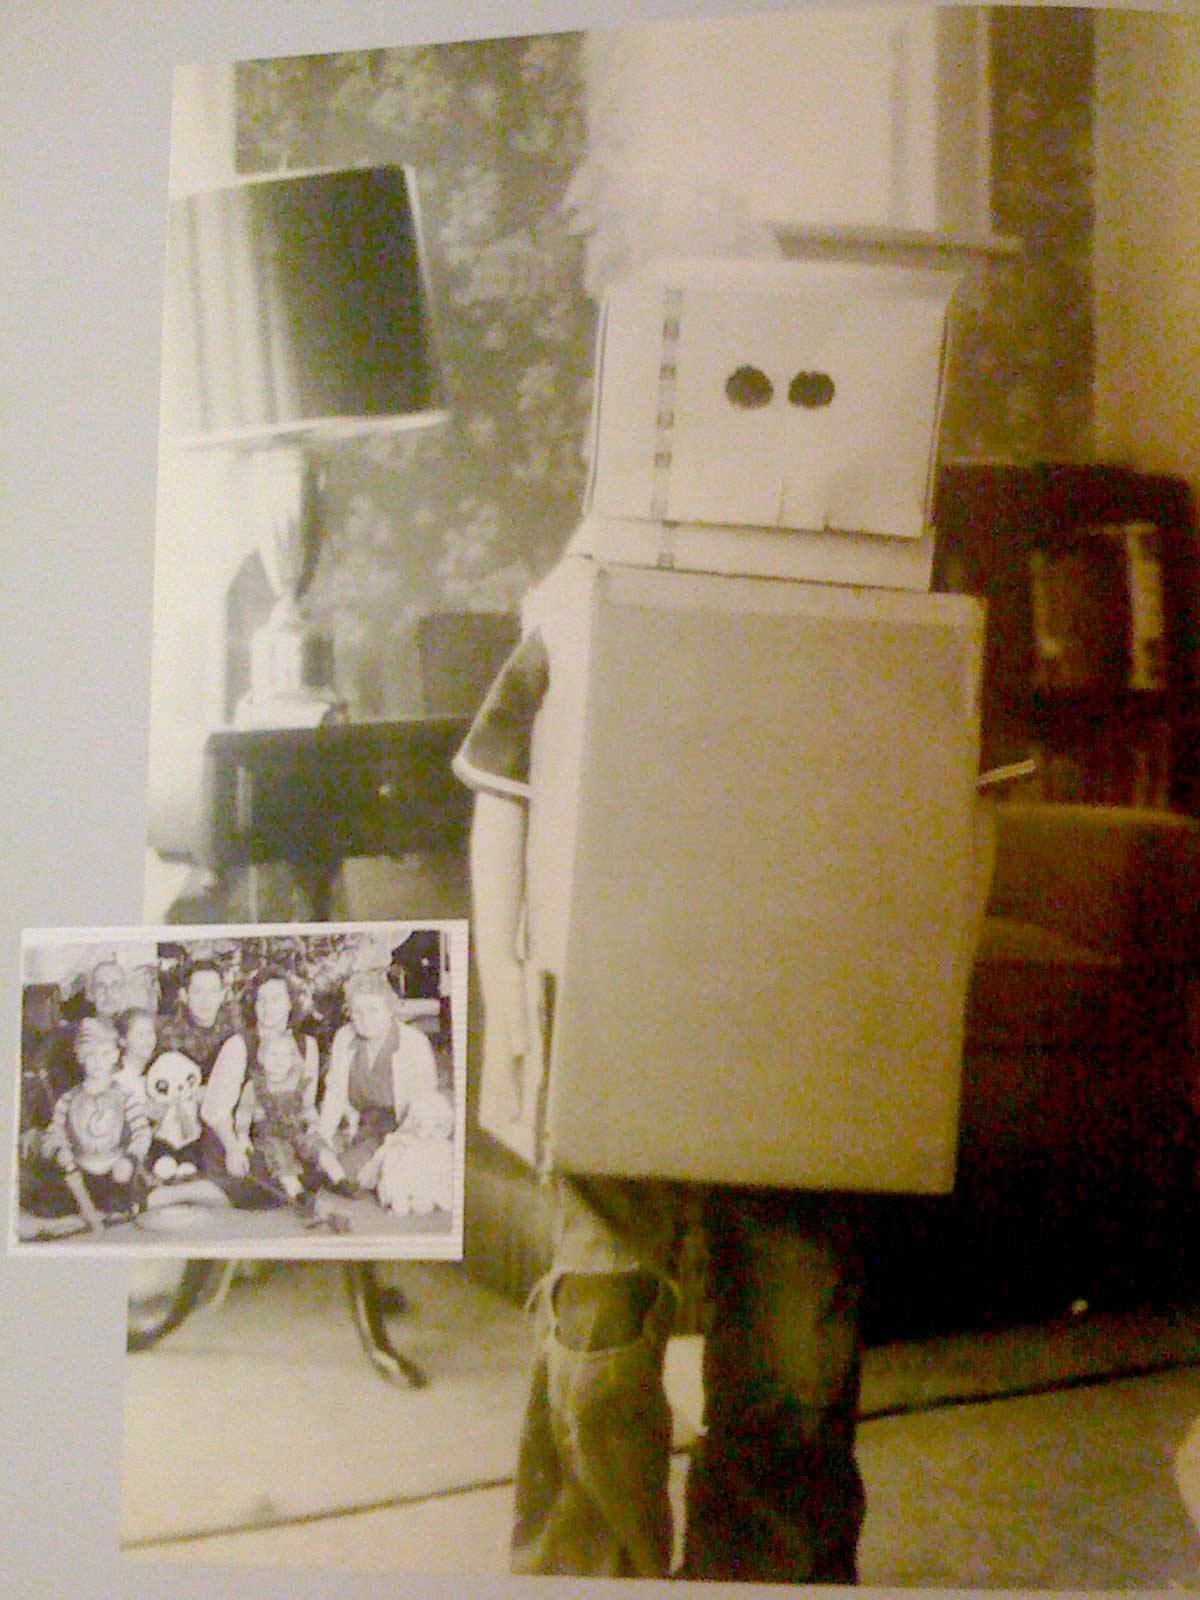 Famous Sound Engineer Ben Burtt in Cardboard